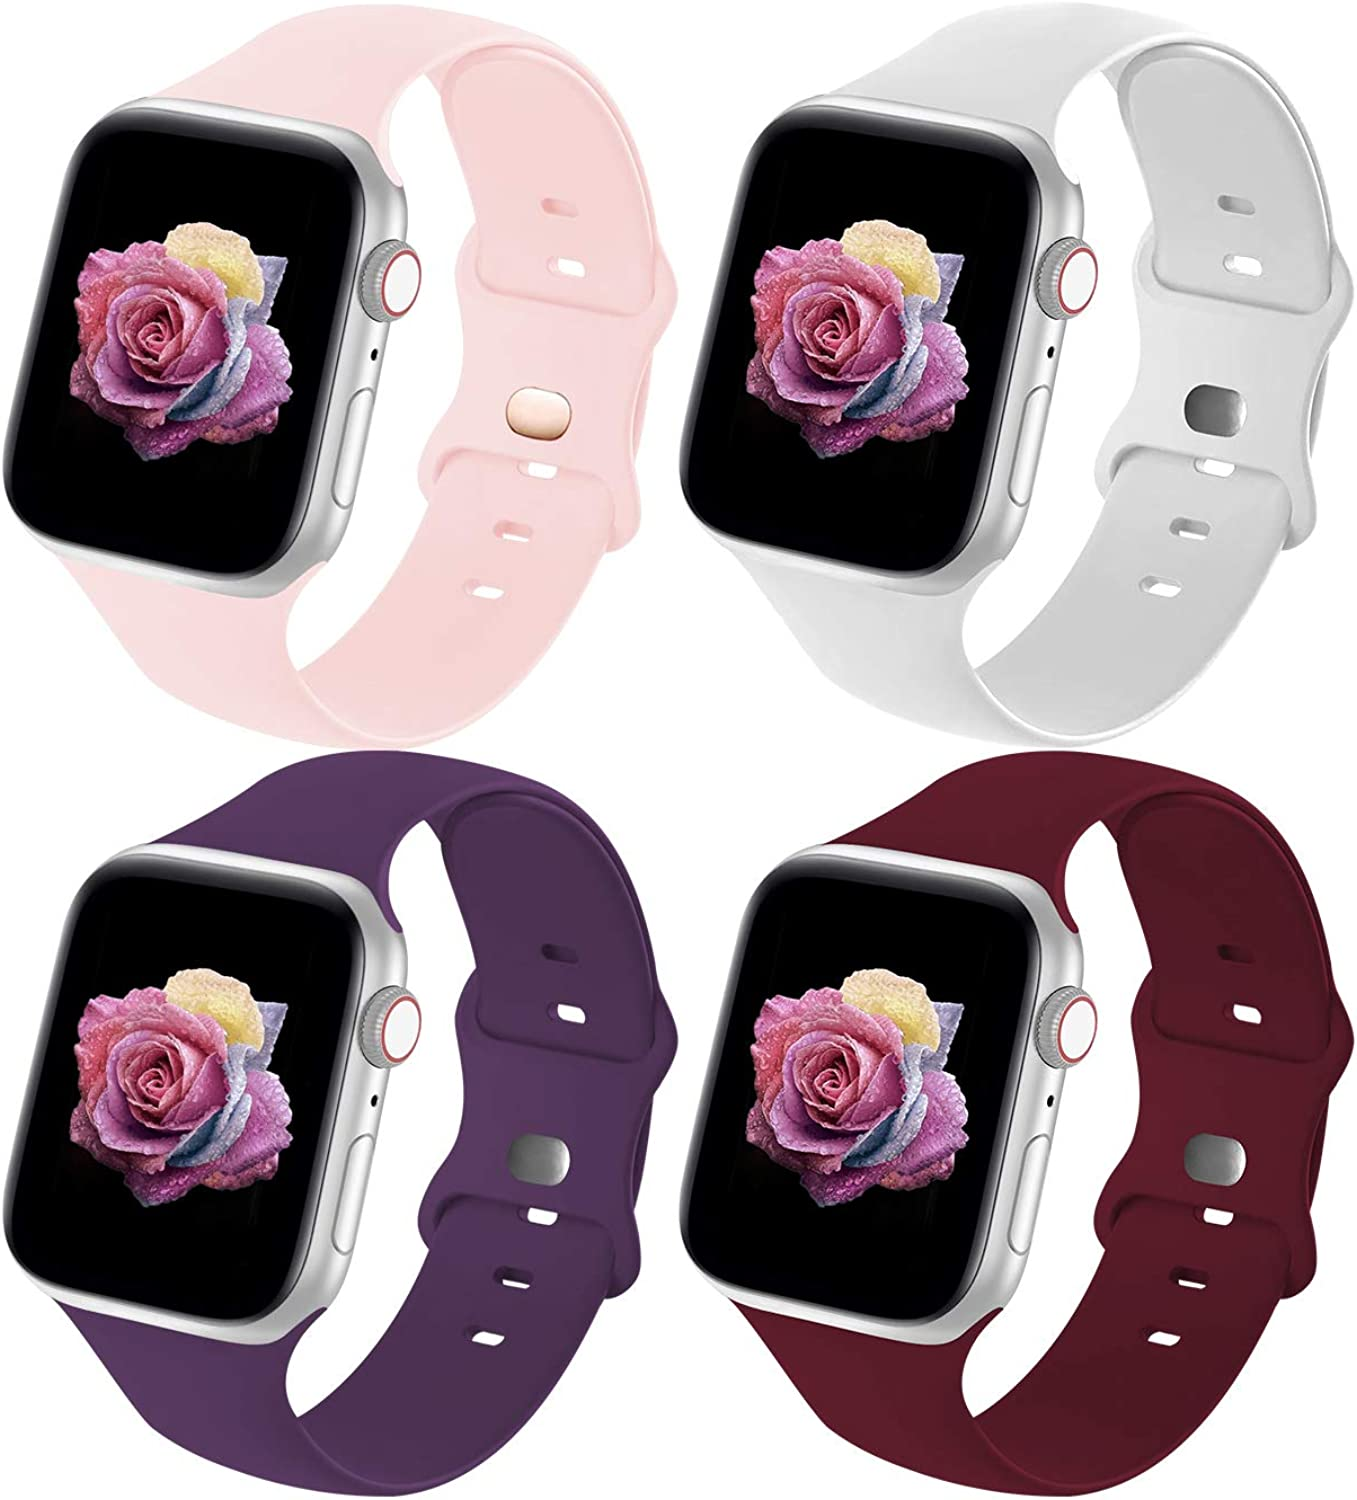 Crefort 7 Pack Sport Band Compatible with Apple Watch Bands 38mm 40mm 42mm 44mm for Women Men,Soft Silicone Replacement Strap Accessory Compatible for iWatch Wristbands Series 6/3/5/SE/4/2/1 S/M M/L